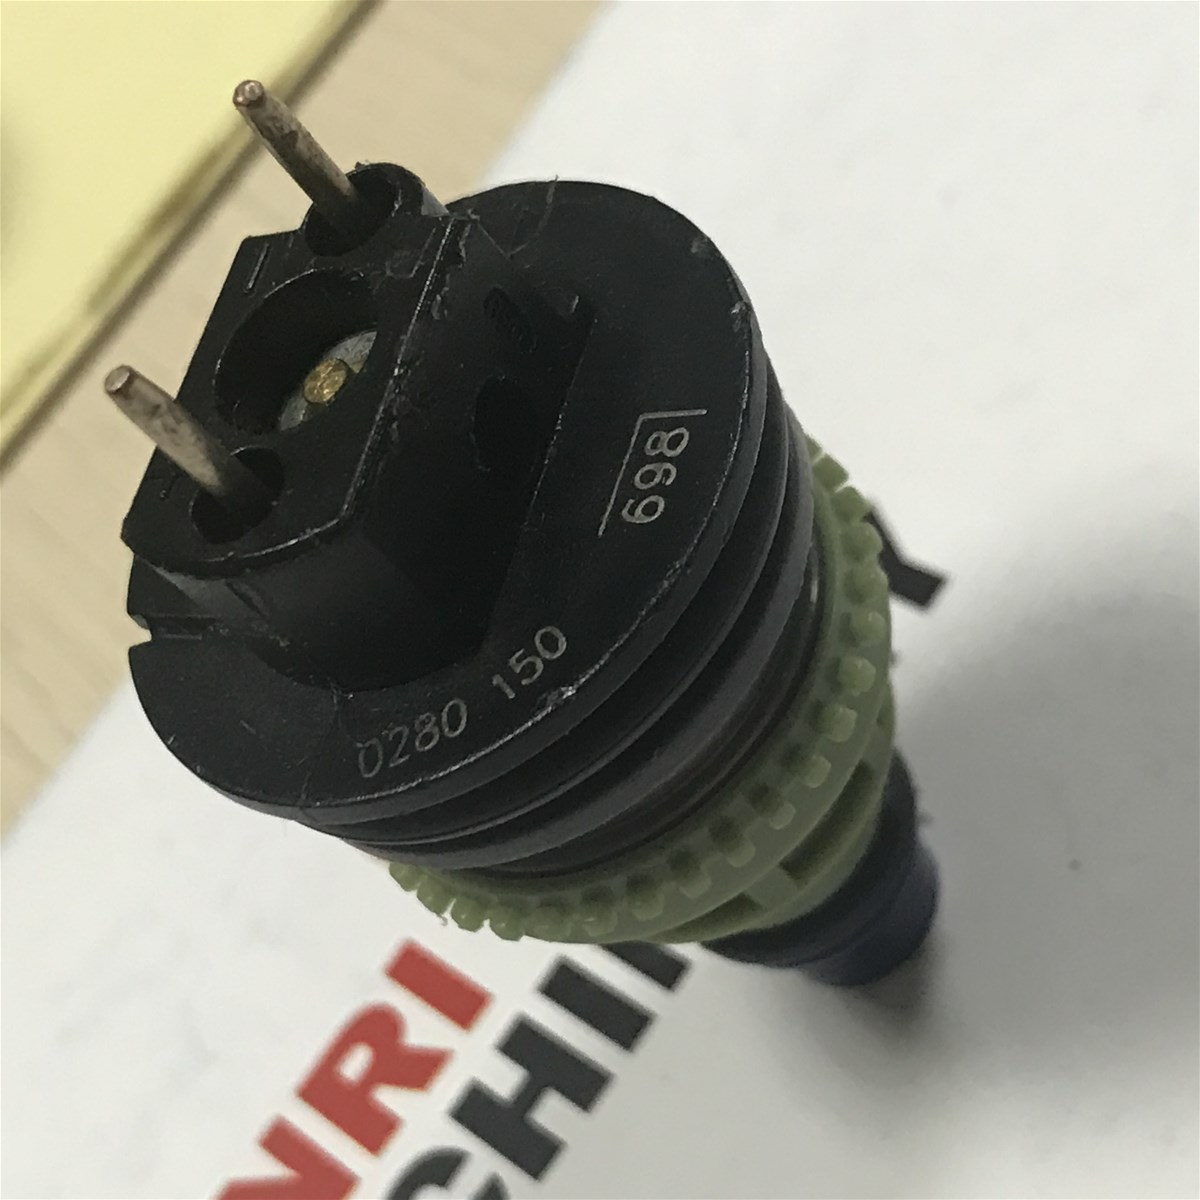 0280150698 gasolina TBI injector Renault 19 Clio 16 Spi Fiat Tipo 16 9944724